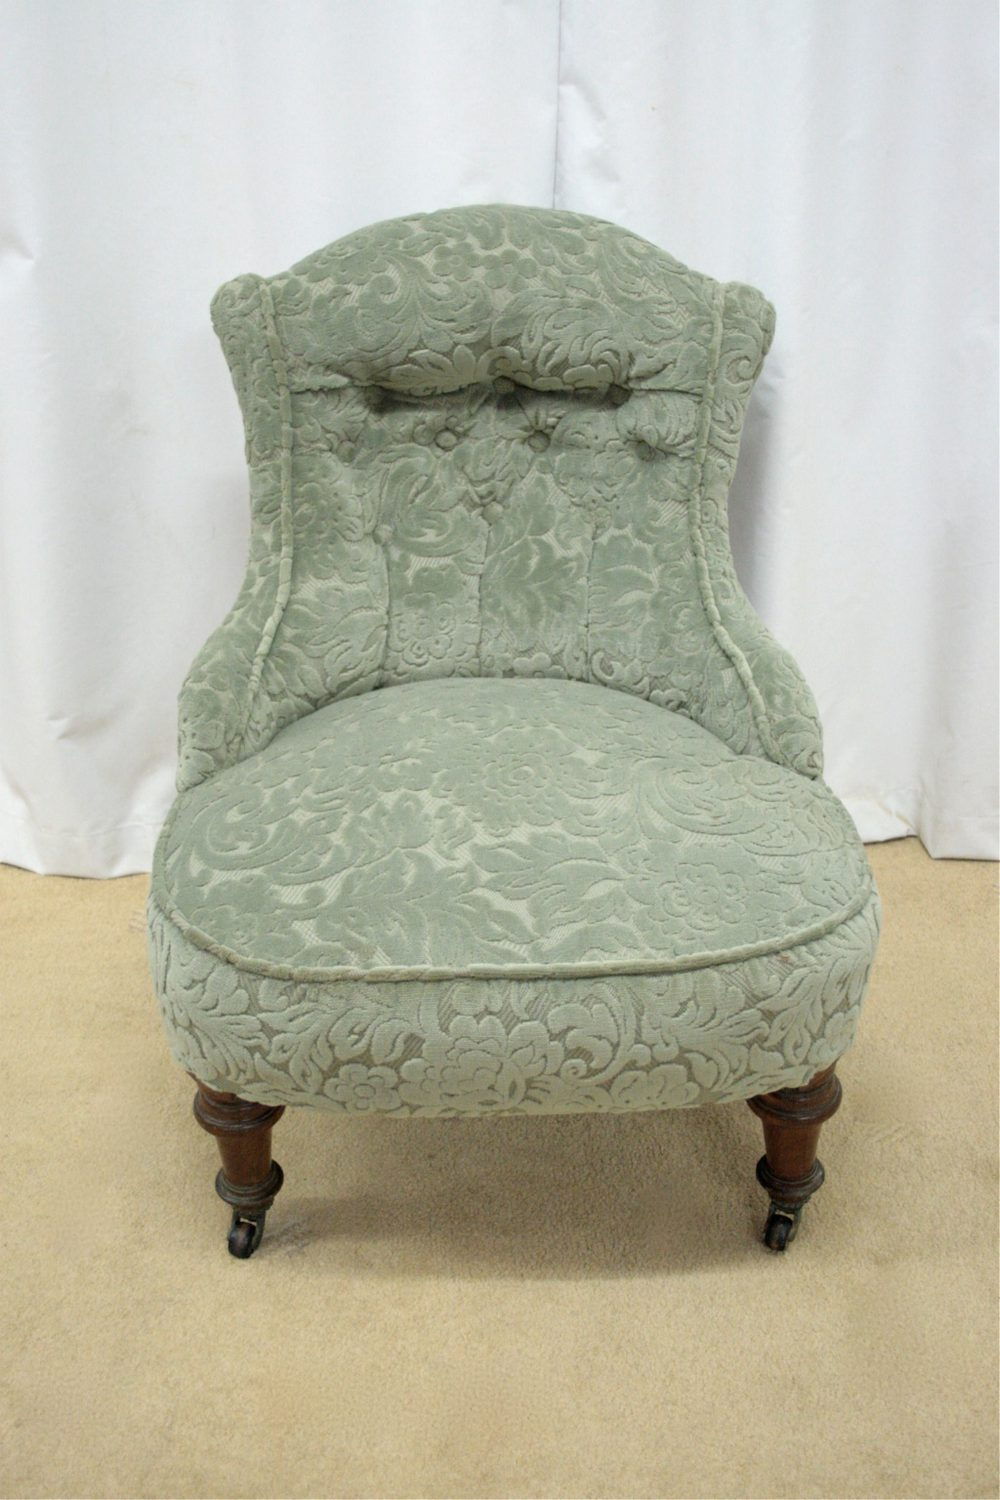 Small Victorian Chair Antique Chairs ... - Small Victorian Chair - Antiques  Atlas - Small Antique Chairs Antique Furniture